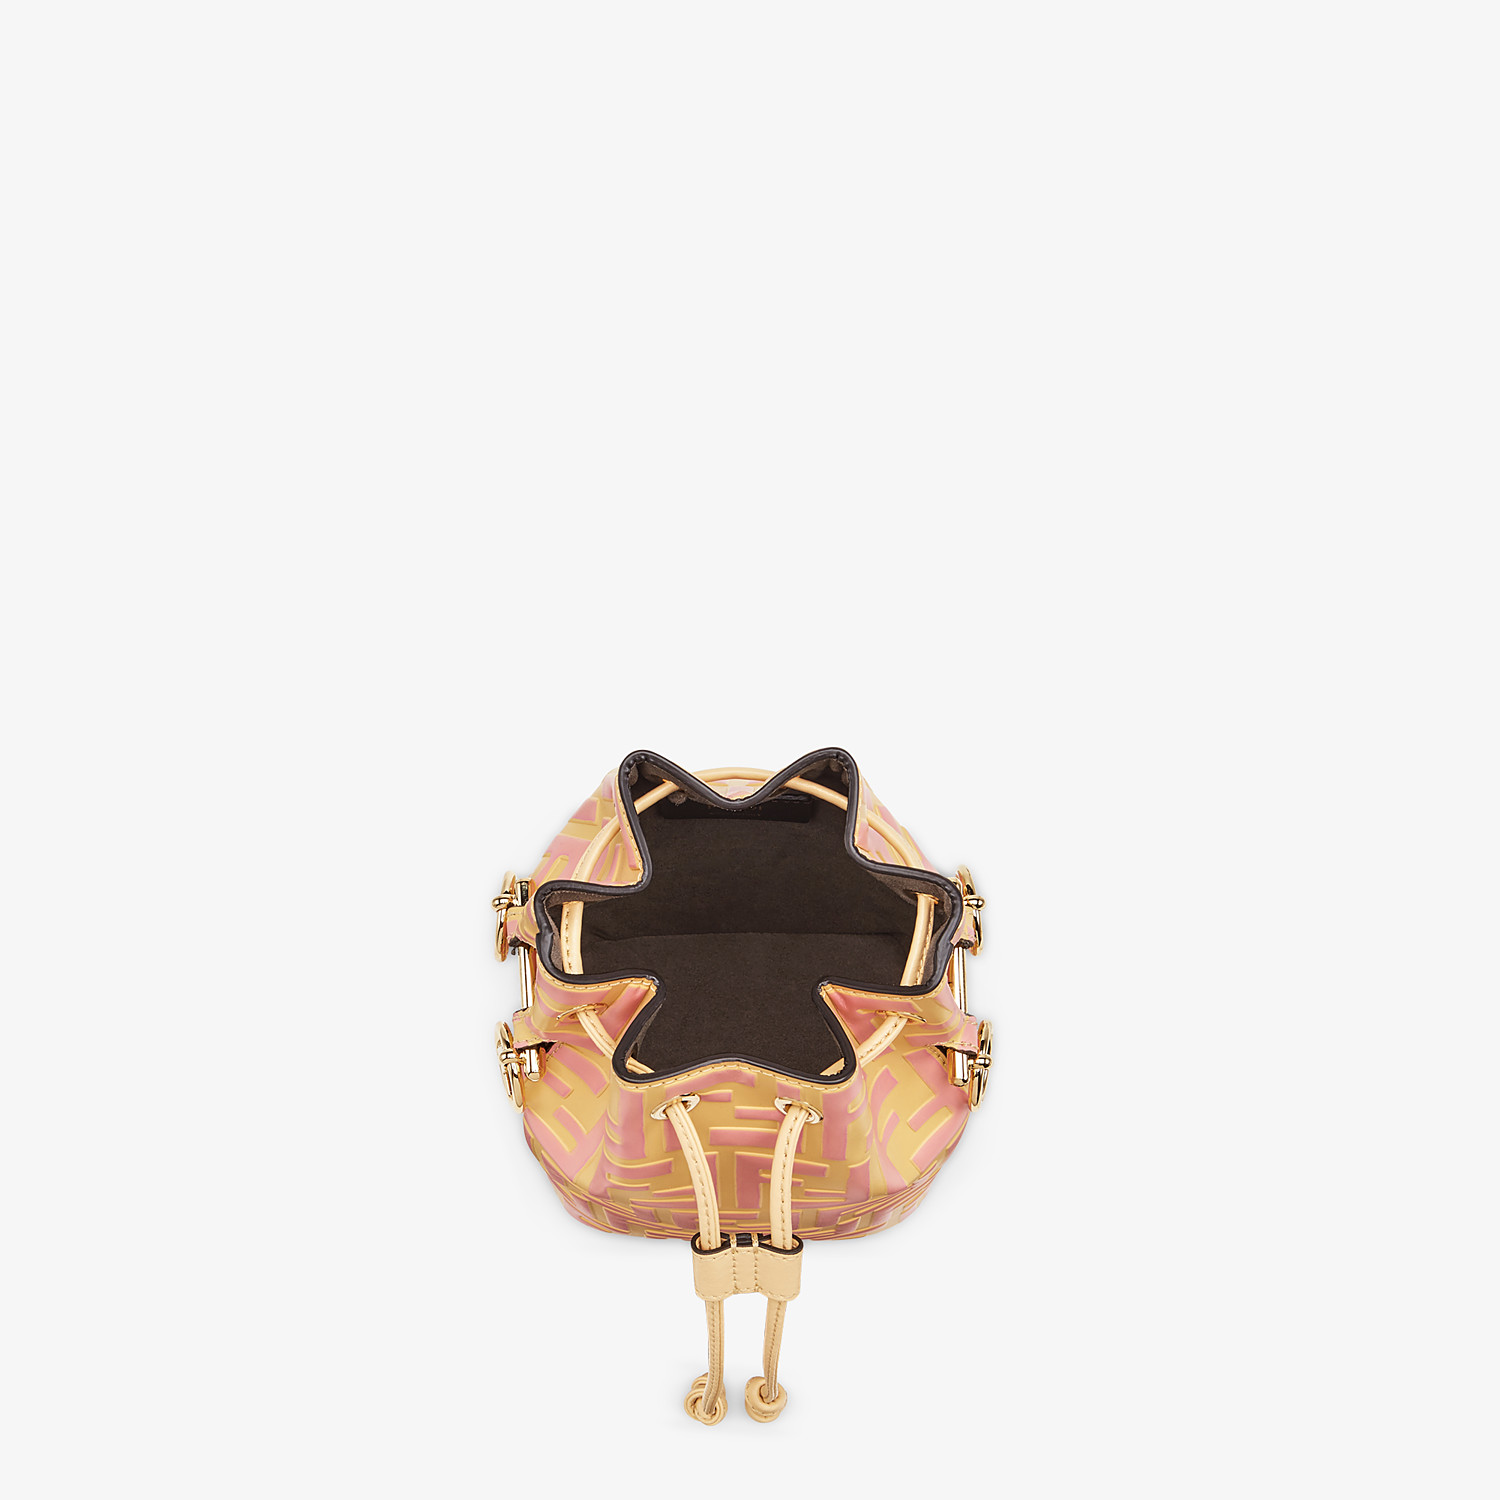 FENDI MON TRESOR - Beige leather mini bag - view 4 detail